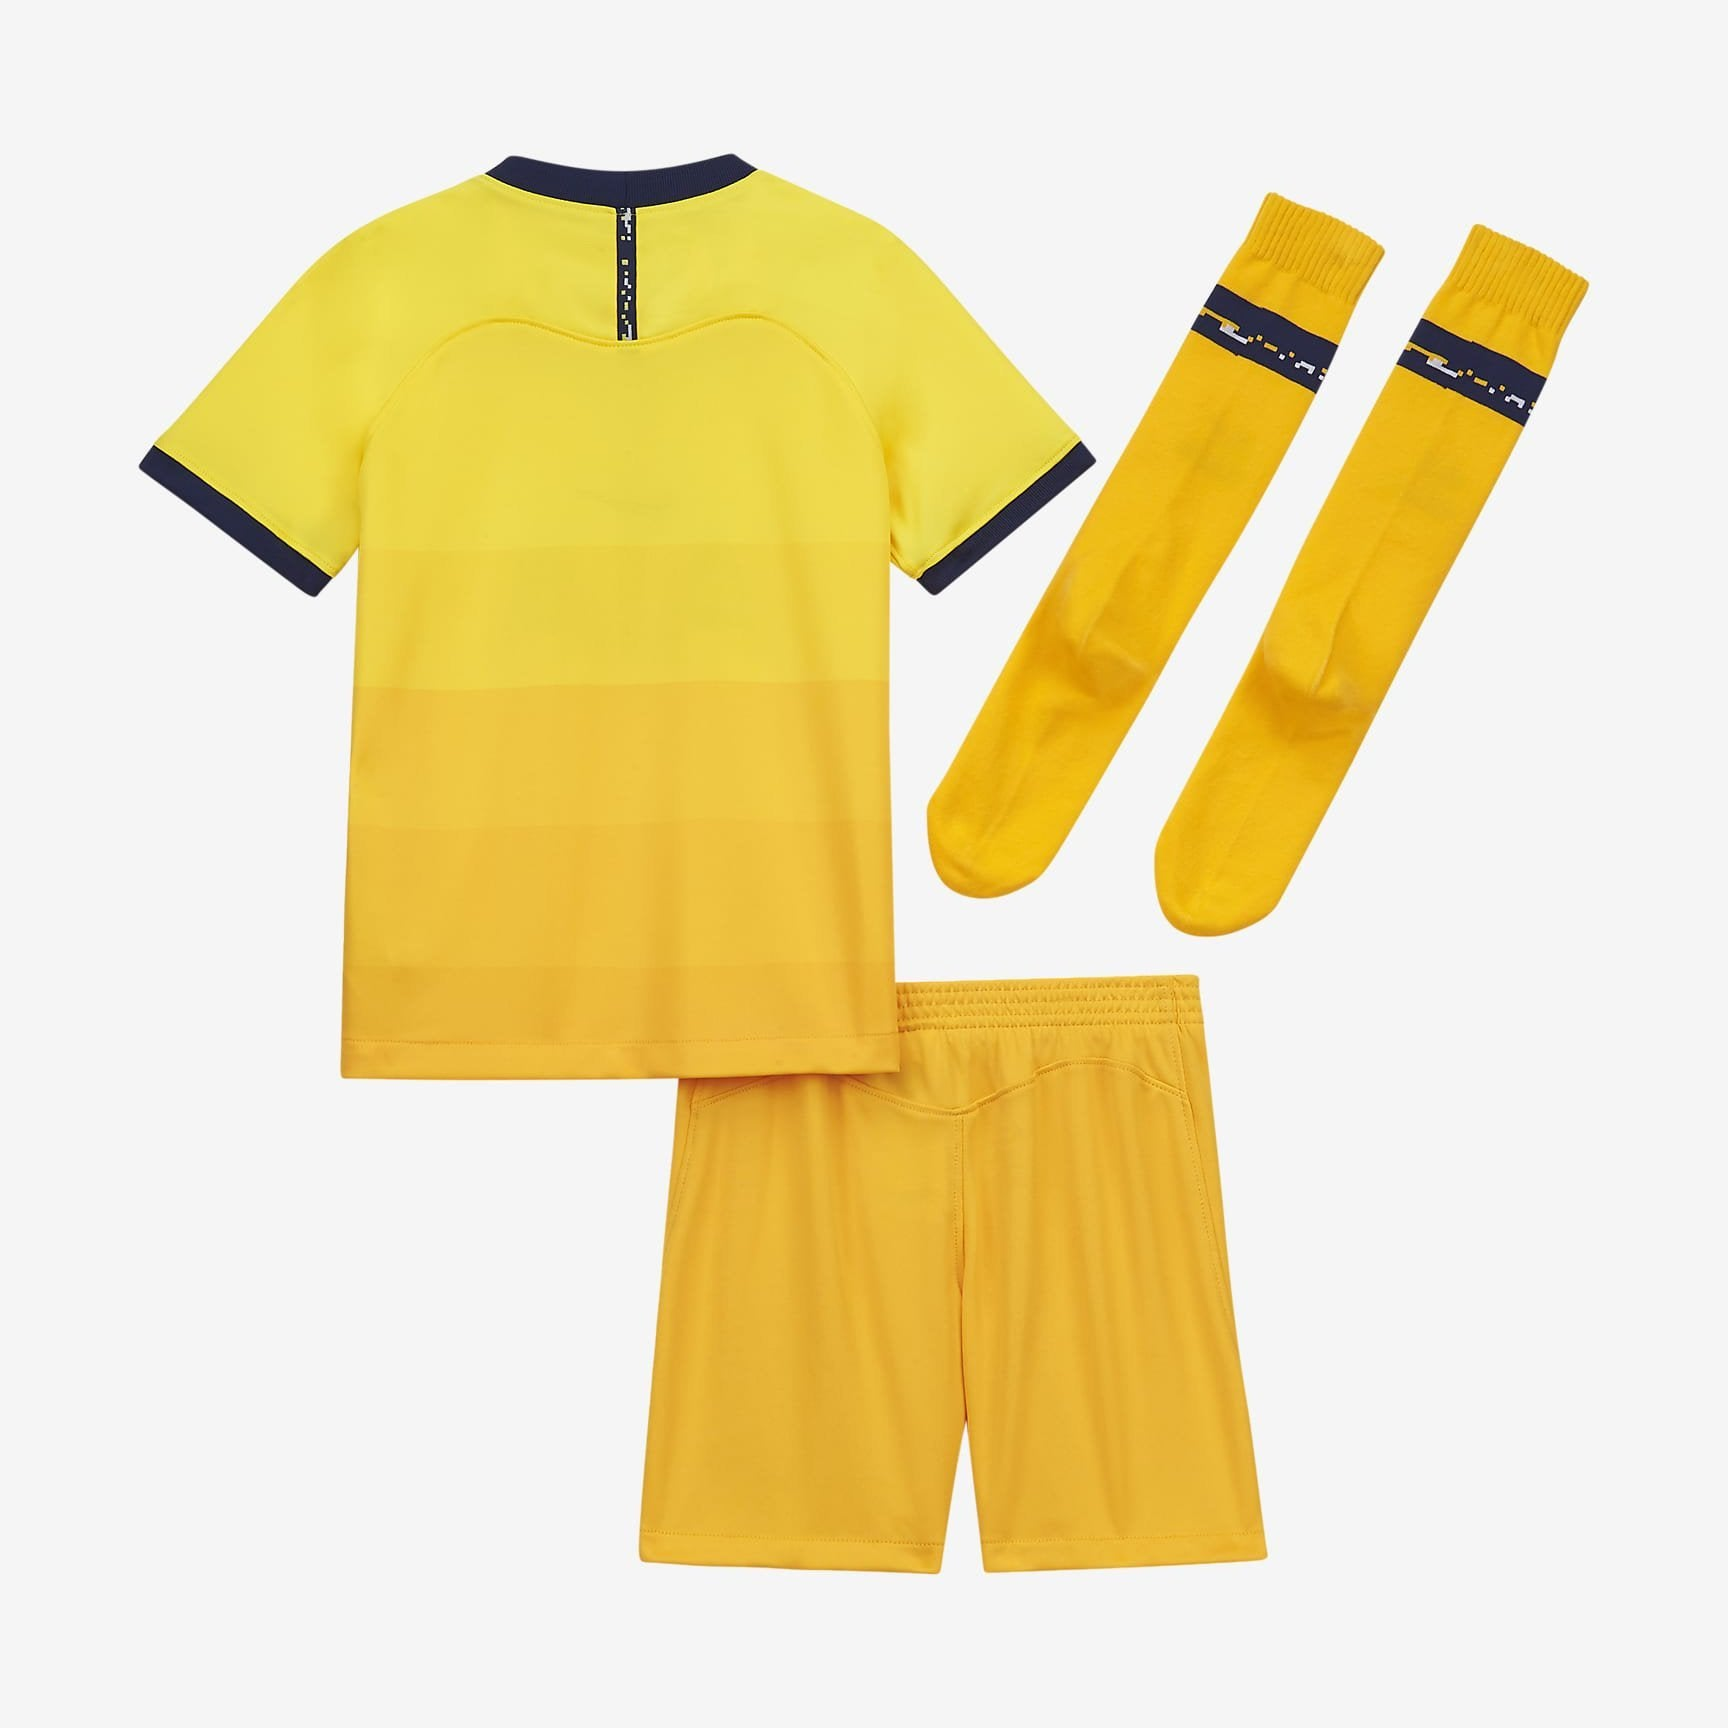 Maillot Kit Tottenham Third Jaune 2020 2021 - Enfant freeshipping - Foot Online